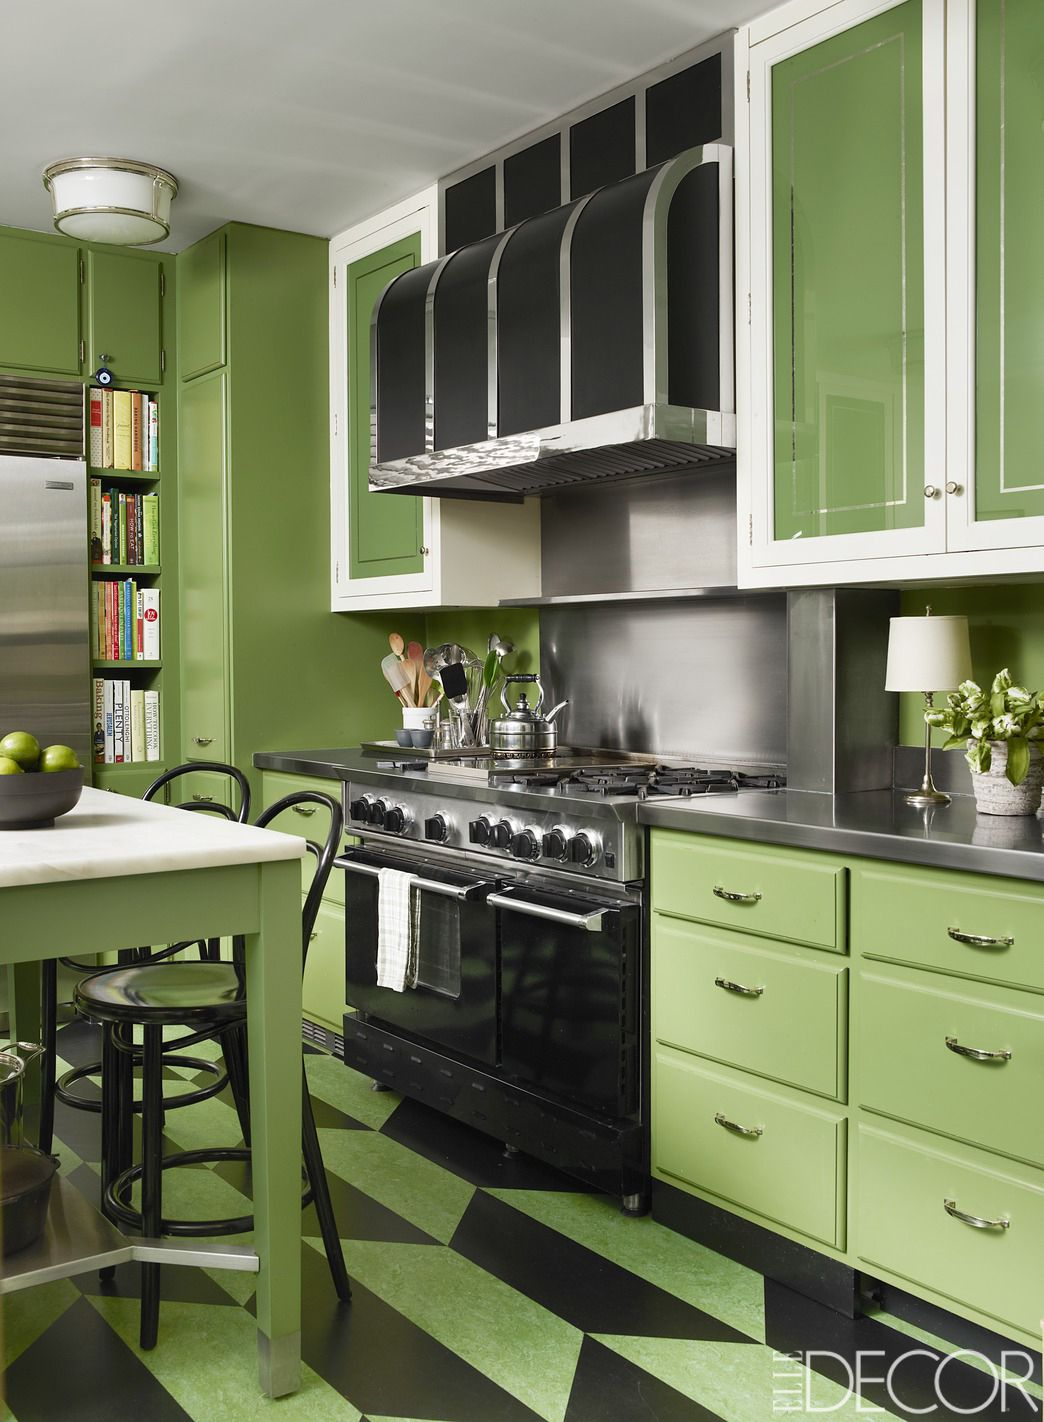 Kitchen Design 50 Small Kitchen Design Ideas  Decorating Tiny Kitchens